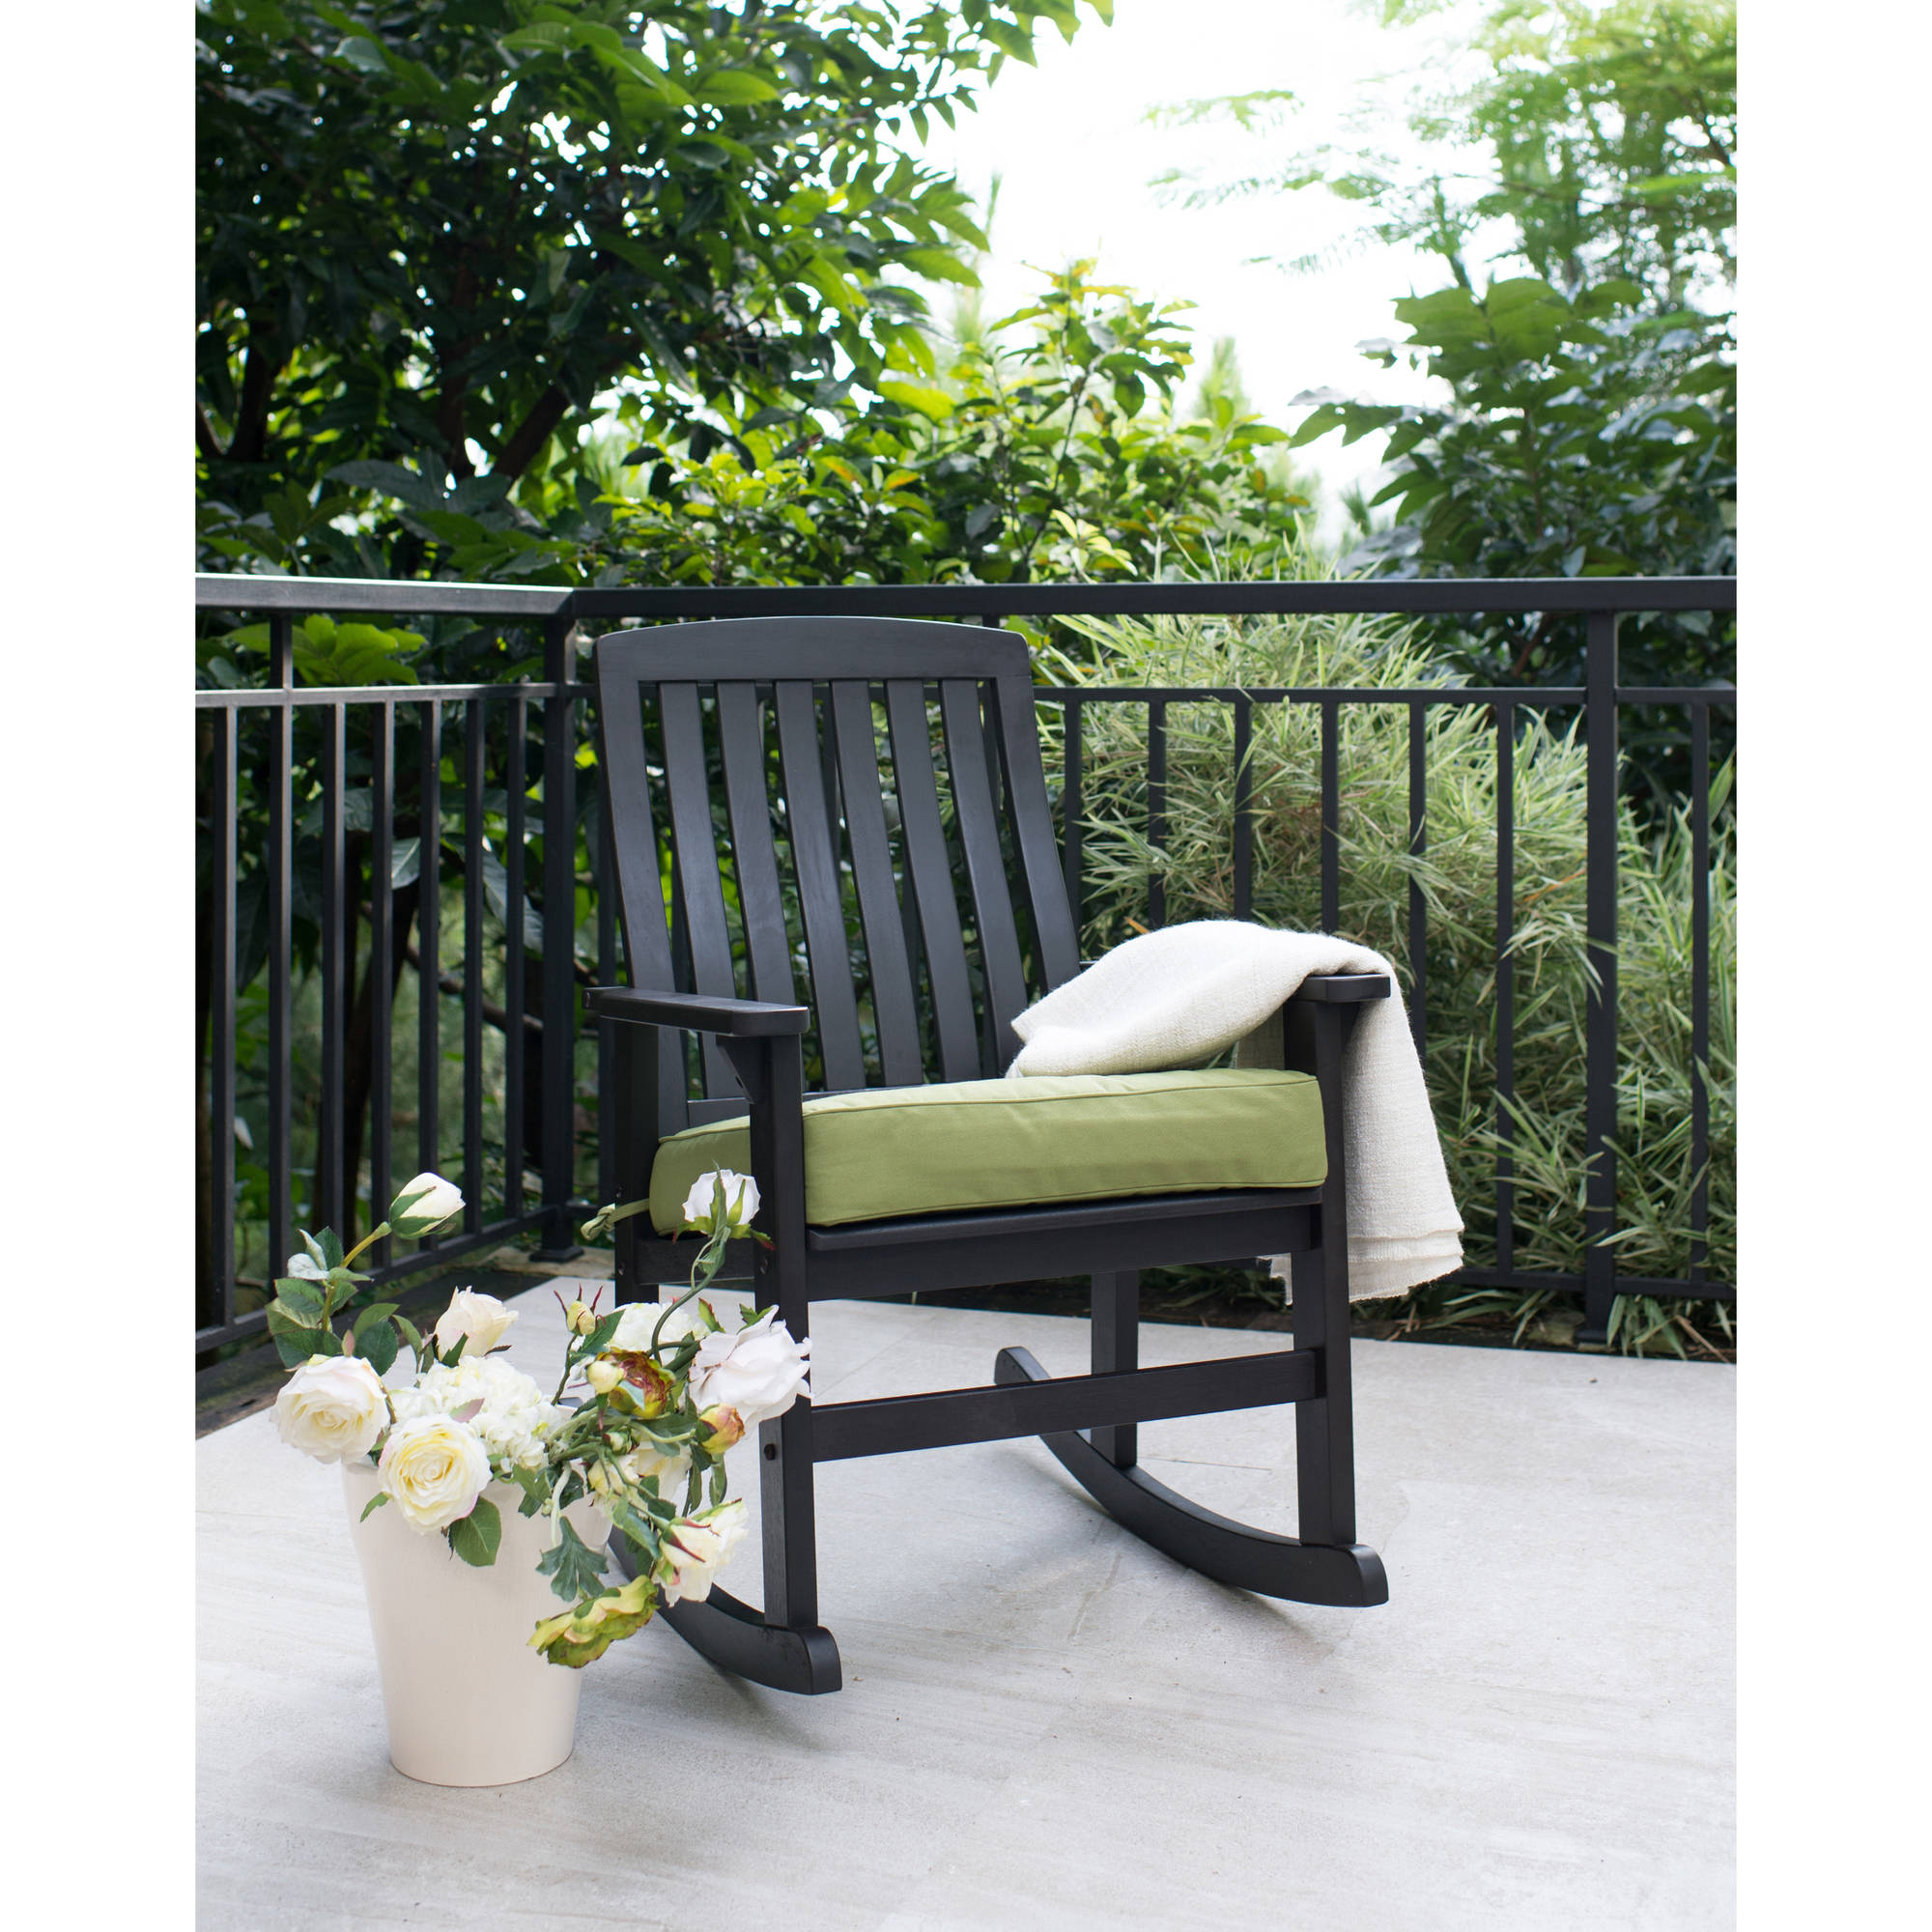 Better Homes & Gardens Delahey Wood Porch Rocking Chair, Black